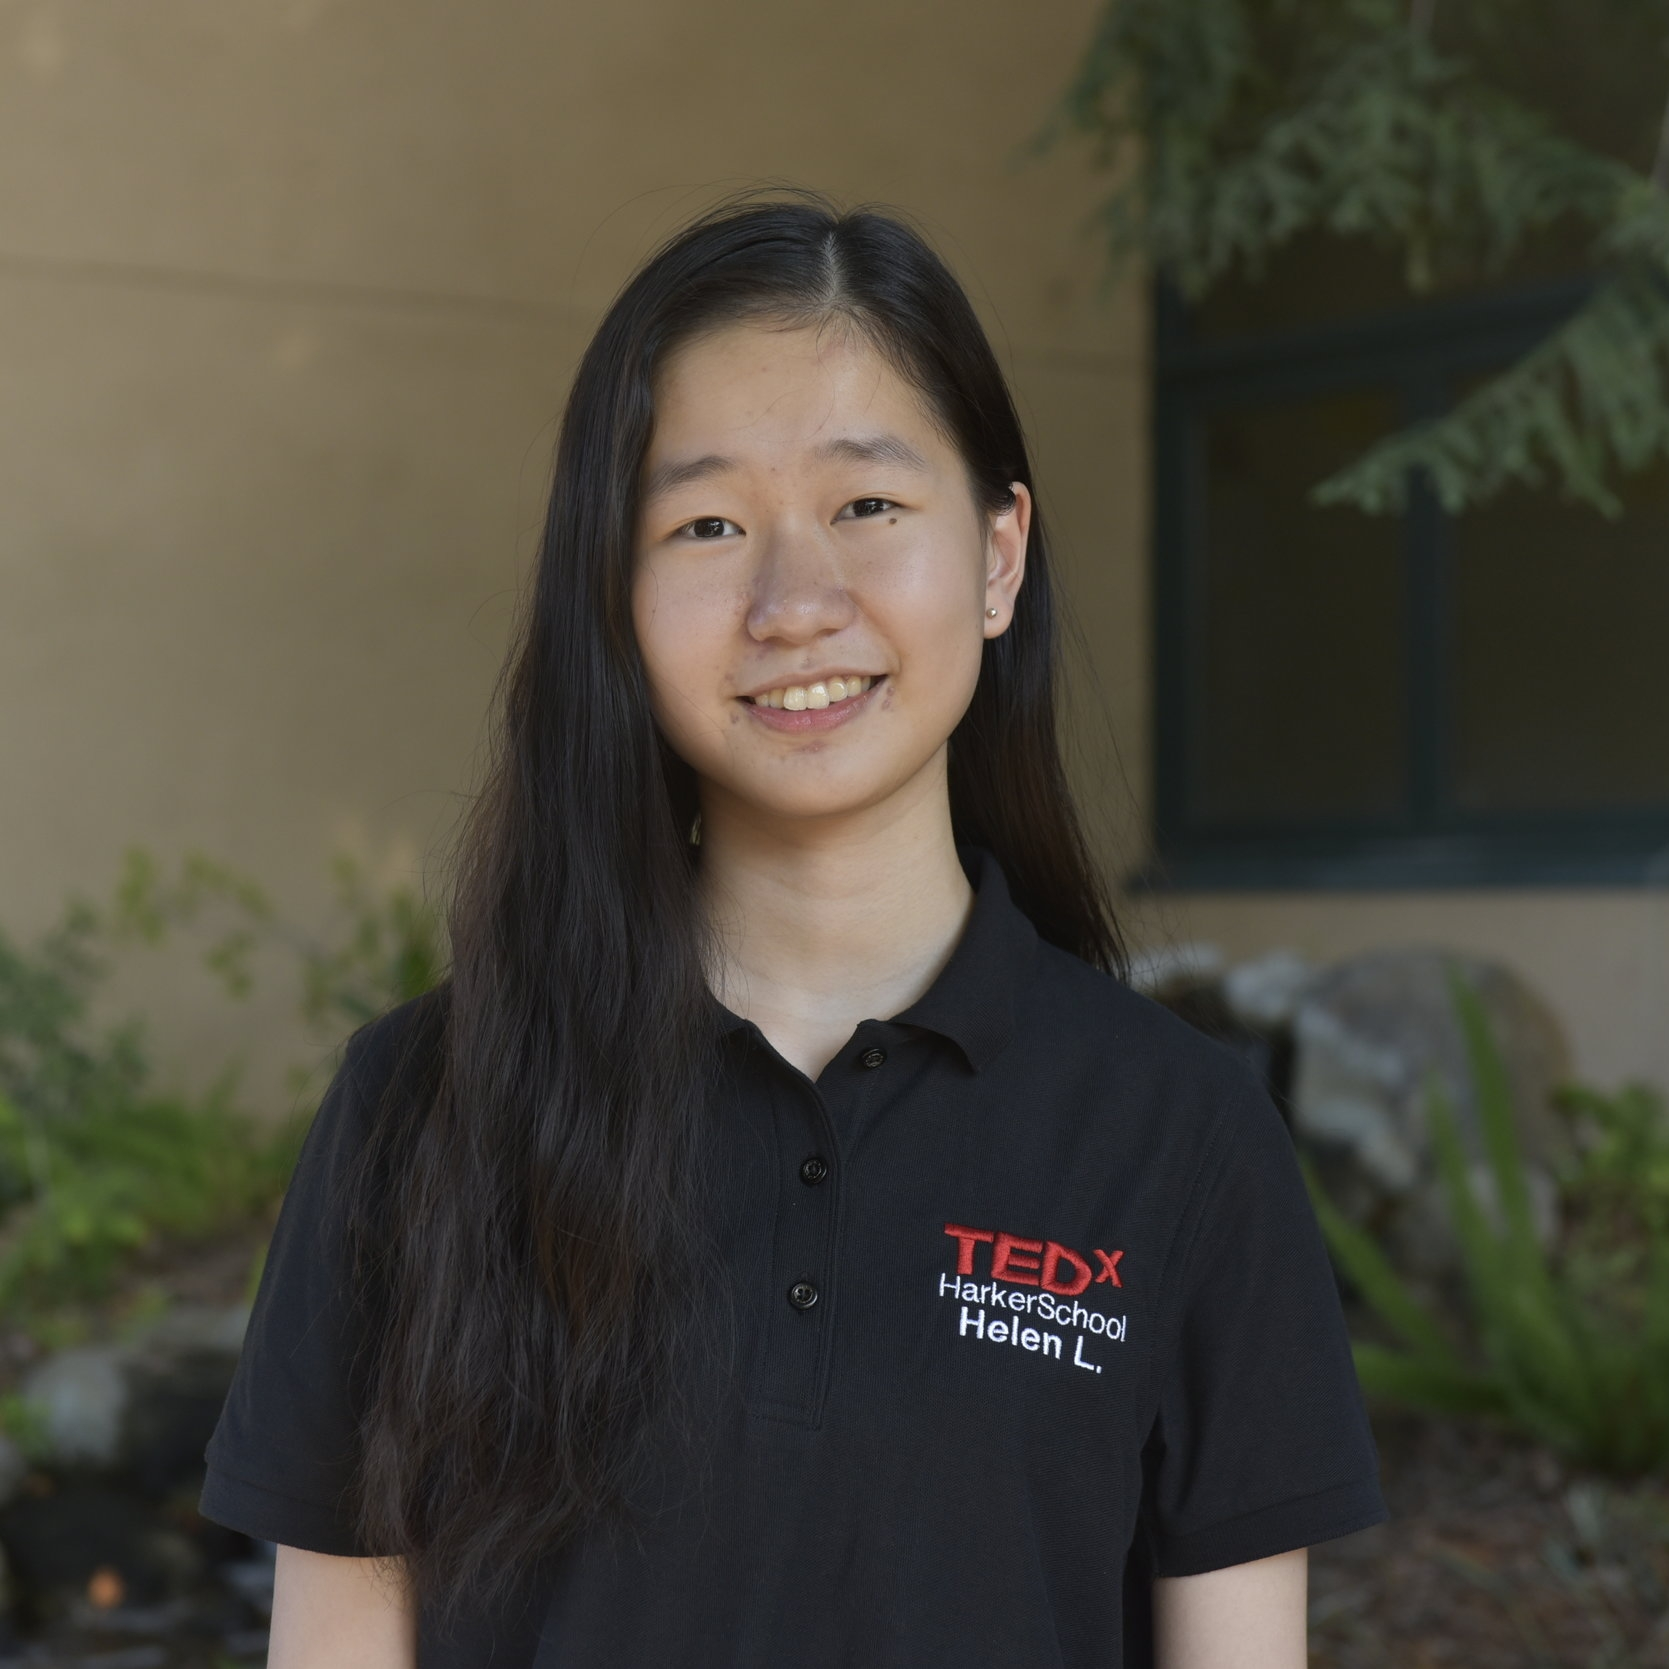 HELEN LI - Helen Li is currently a sophomore at The Harker School in San Jose and serves as Operations Associate on the TEDxHarkerSchool team. In addition to TEDx, she is also a Student Council Secretary and a member of the debate team. Passionate about computer science, she organizes and competes in local hackathons. In her free time, she enjoys volunteering, researching, dancing, and watching reality tv shows.